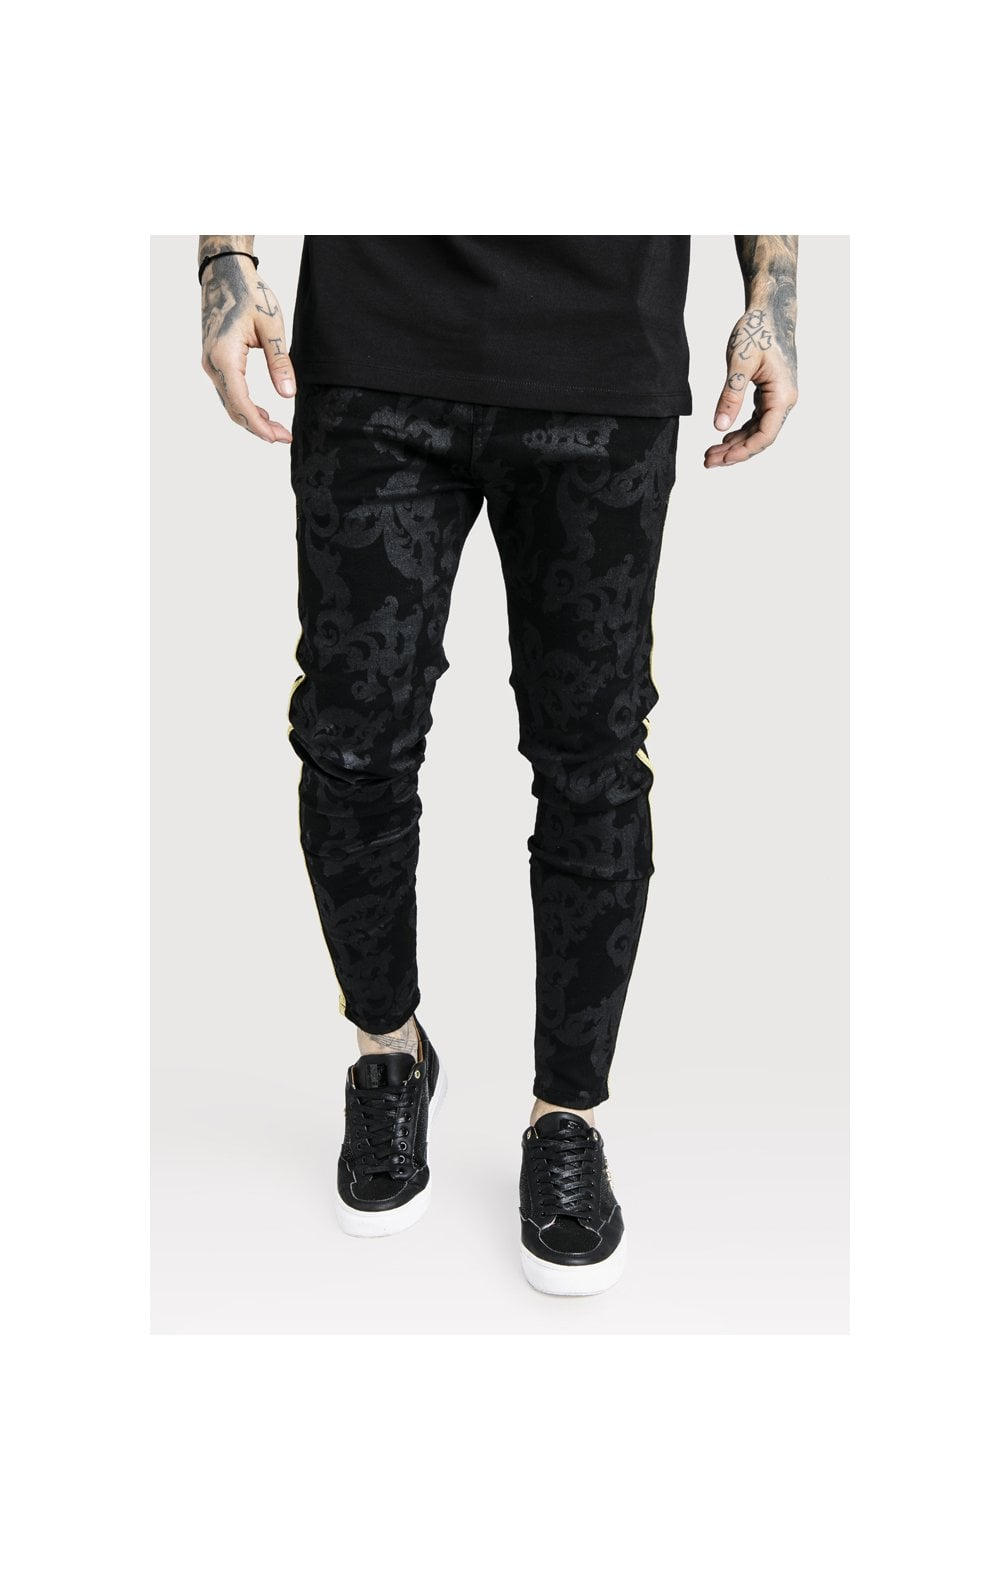 SikSilk x Dani Alves Low Rise Skinny Denims - Black (2)